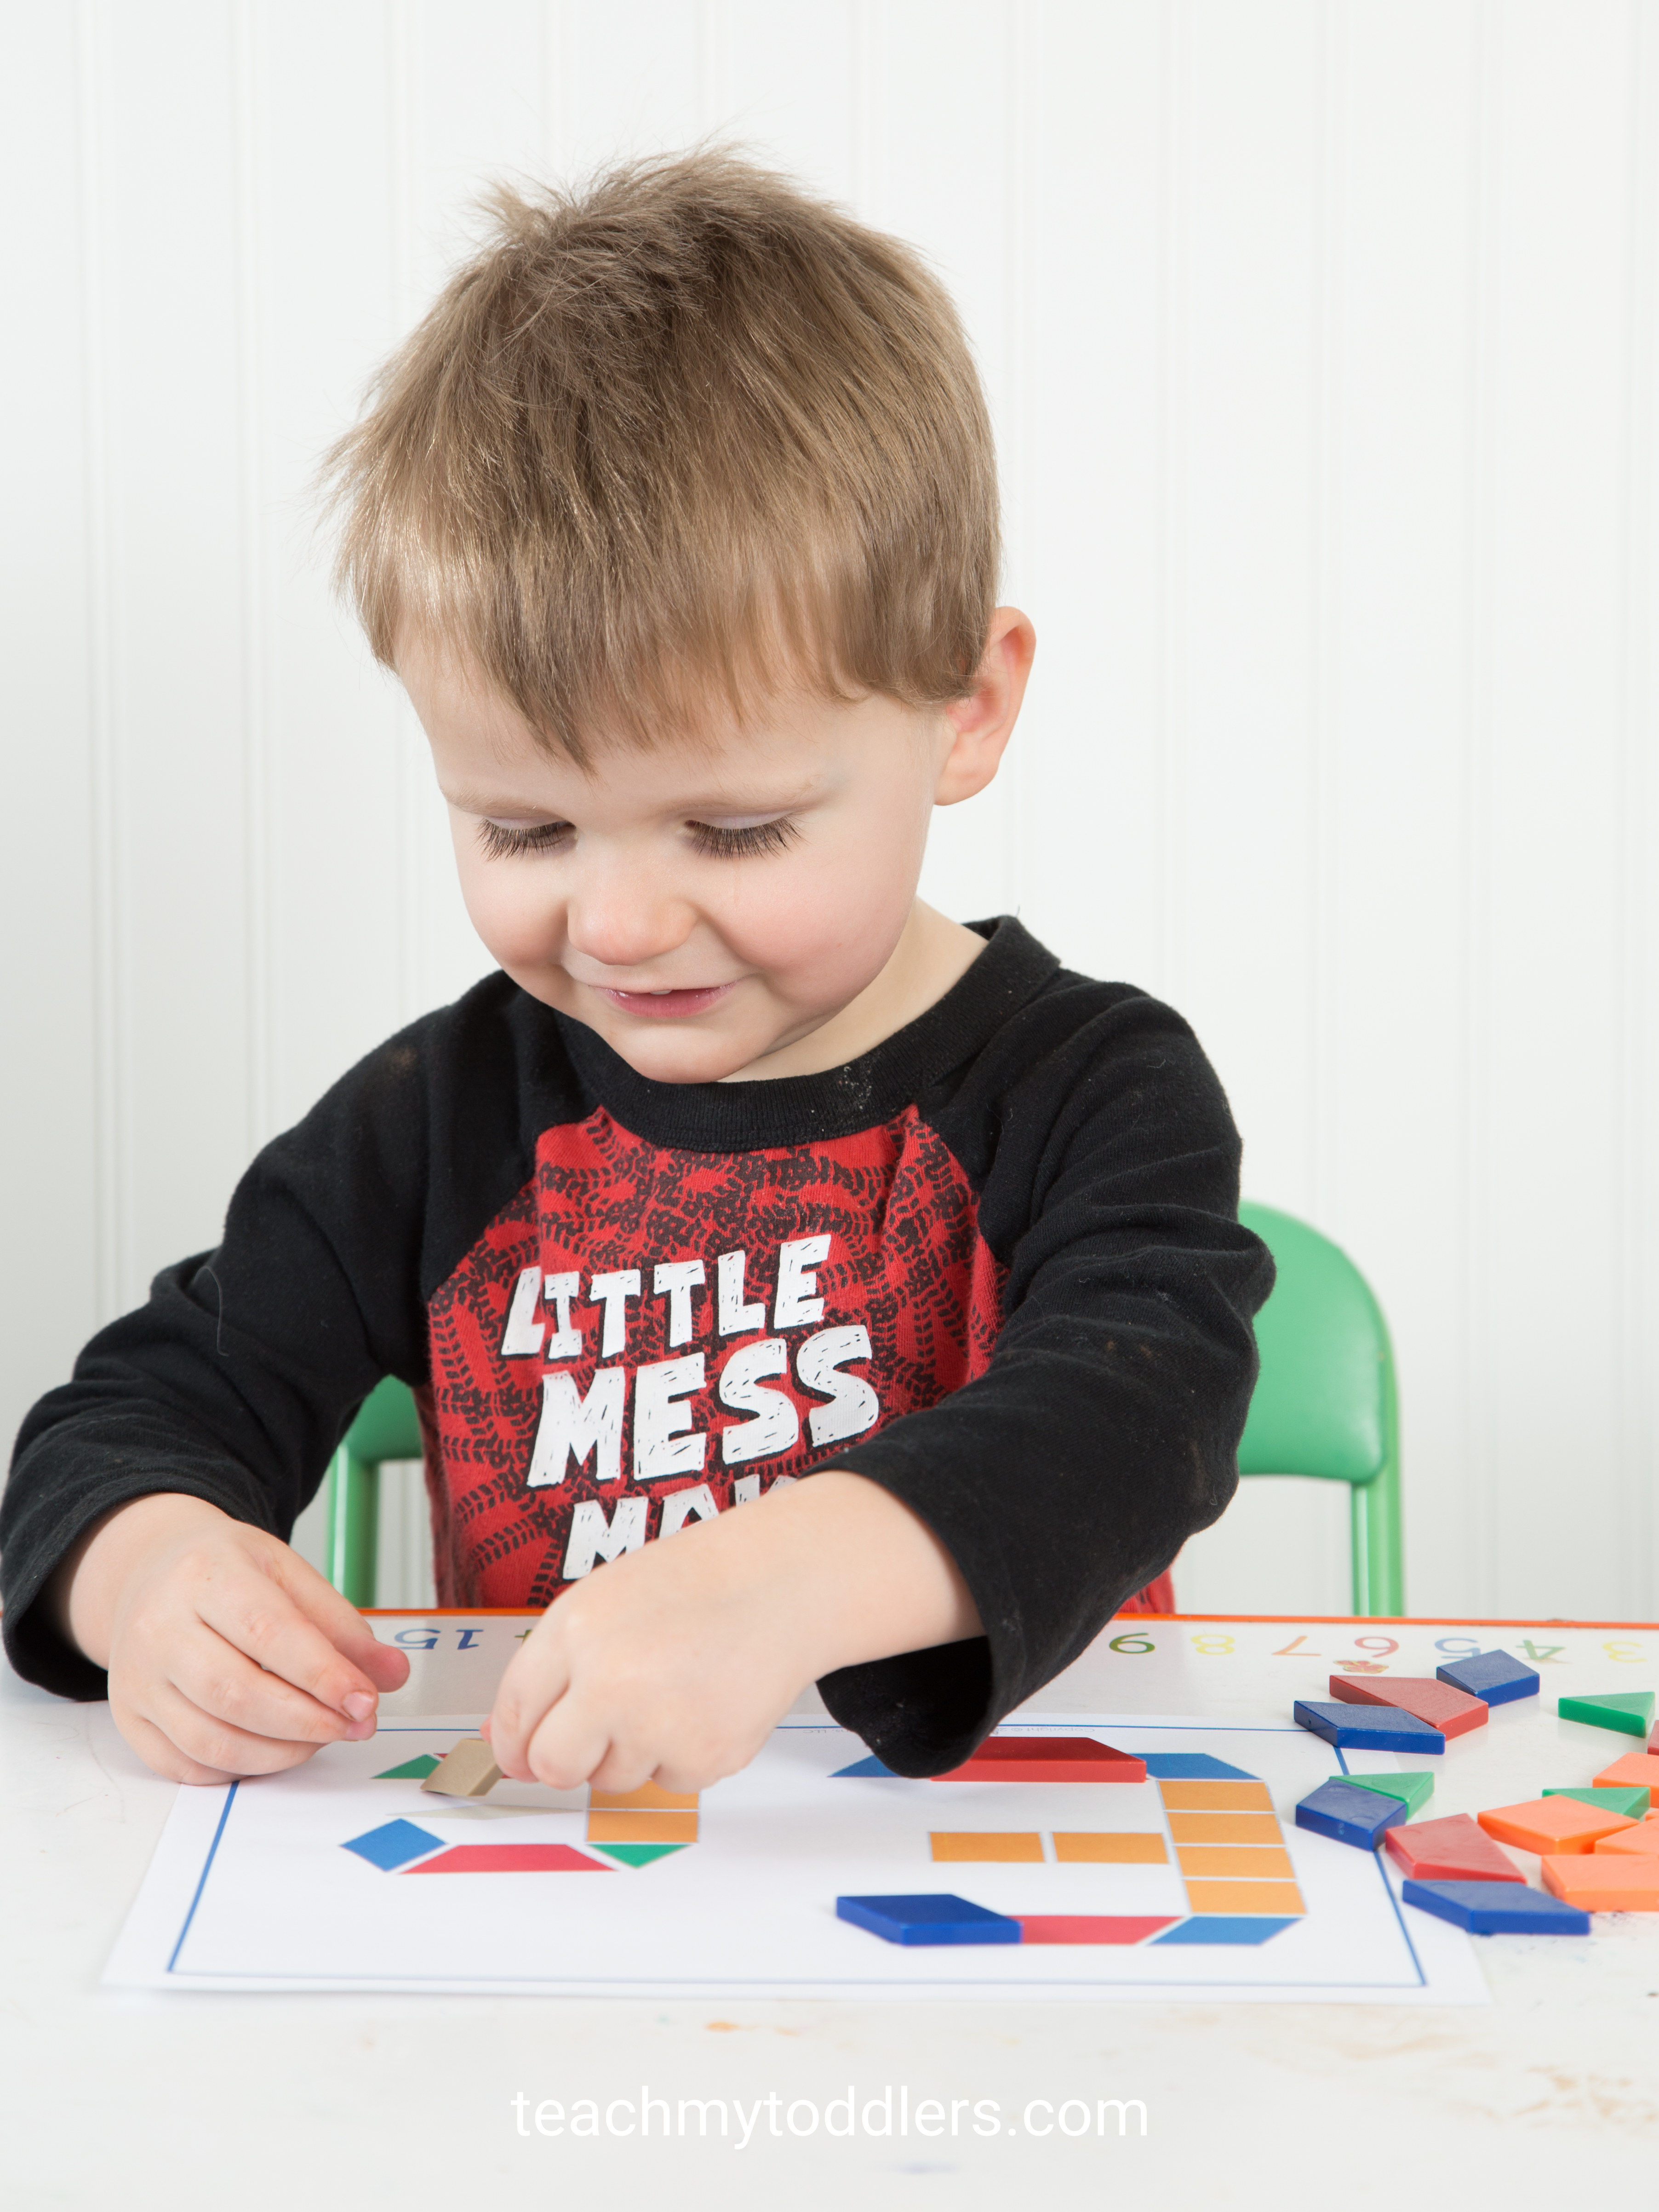 These unique e is for extinct activities are great to teach your toddler the letter e